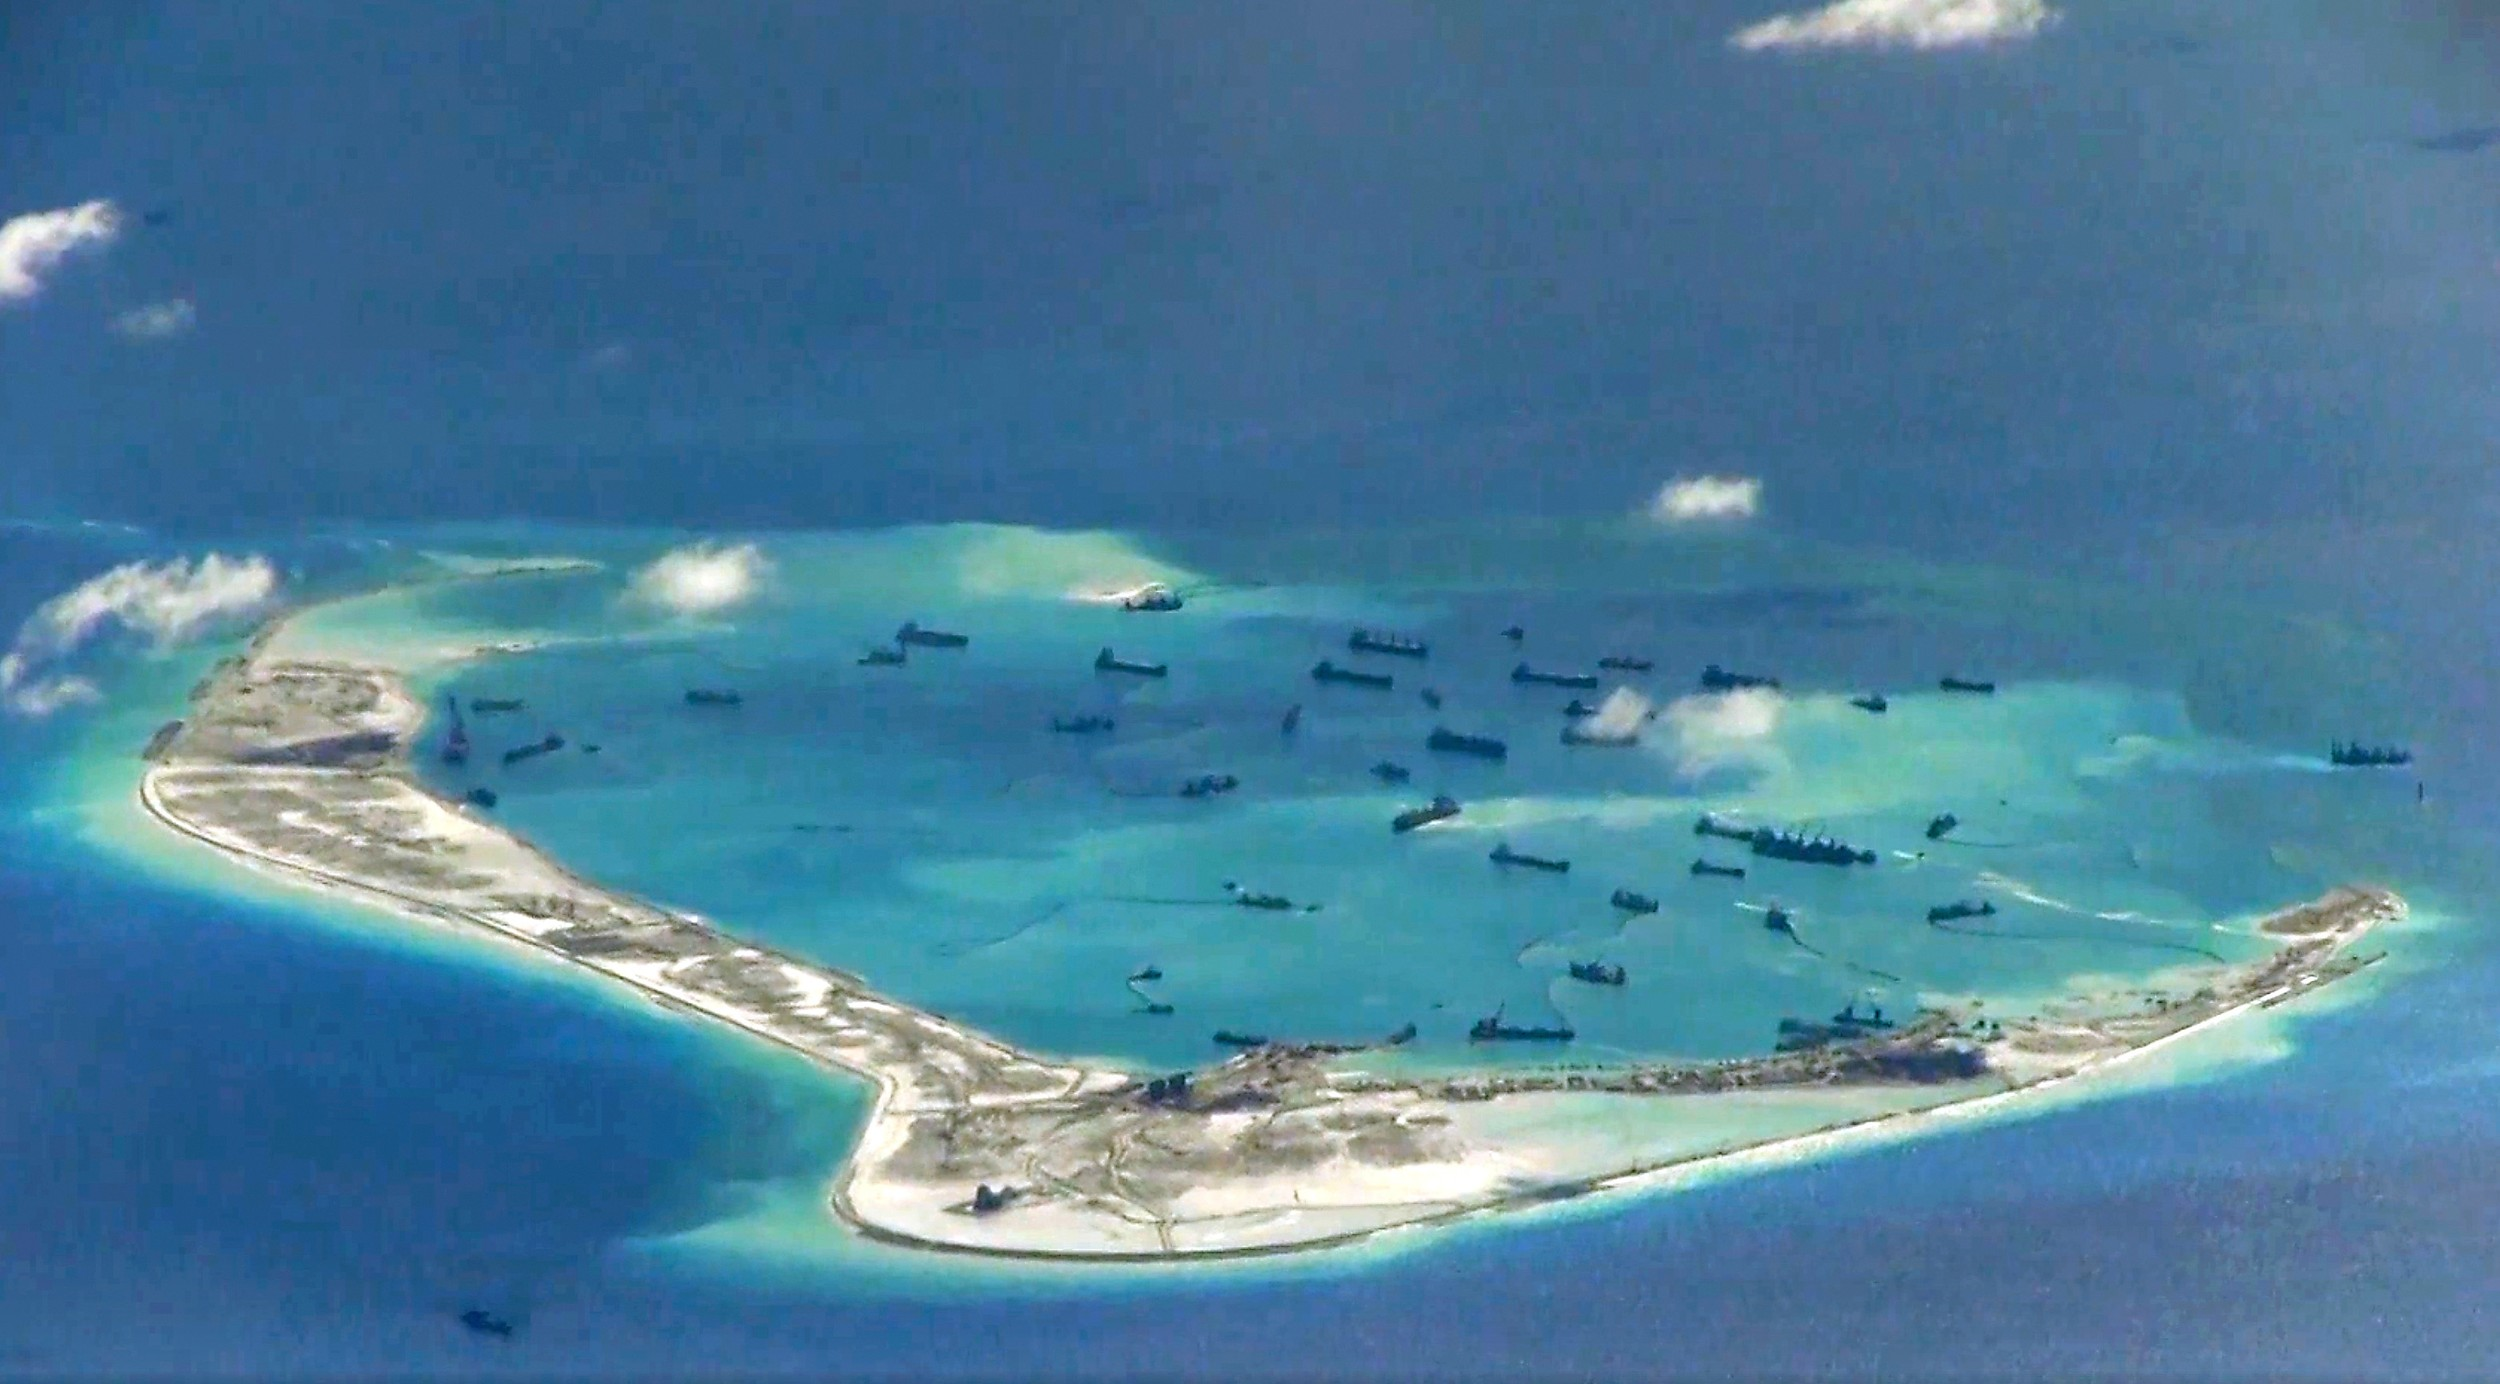 Chinese dredging ships are seen around Mischief Reef in the disputed Spratly Islands in the South China Sea in this image from a U.S. Navy surveillance aircraft, May 21, 2015. (U.S. Navy handout via Reuters)